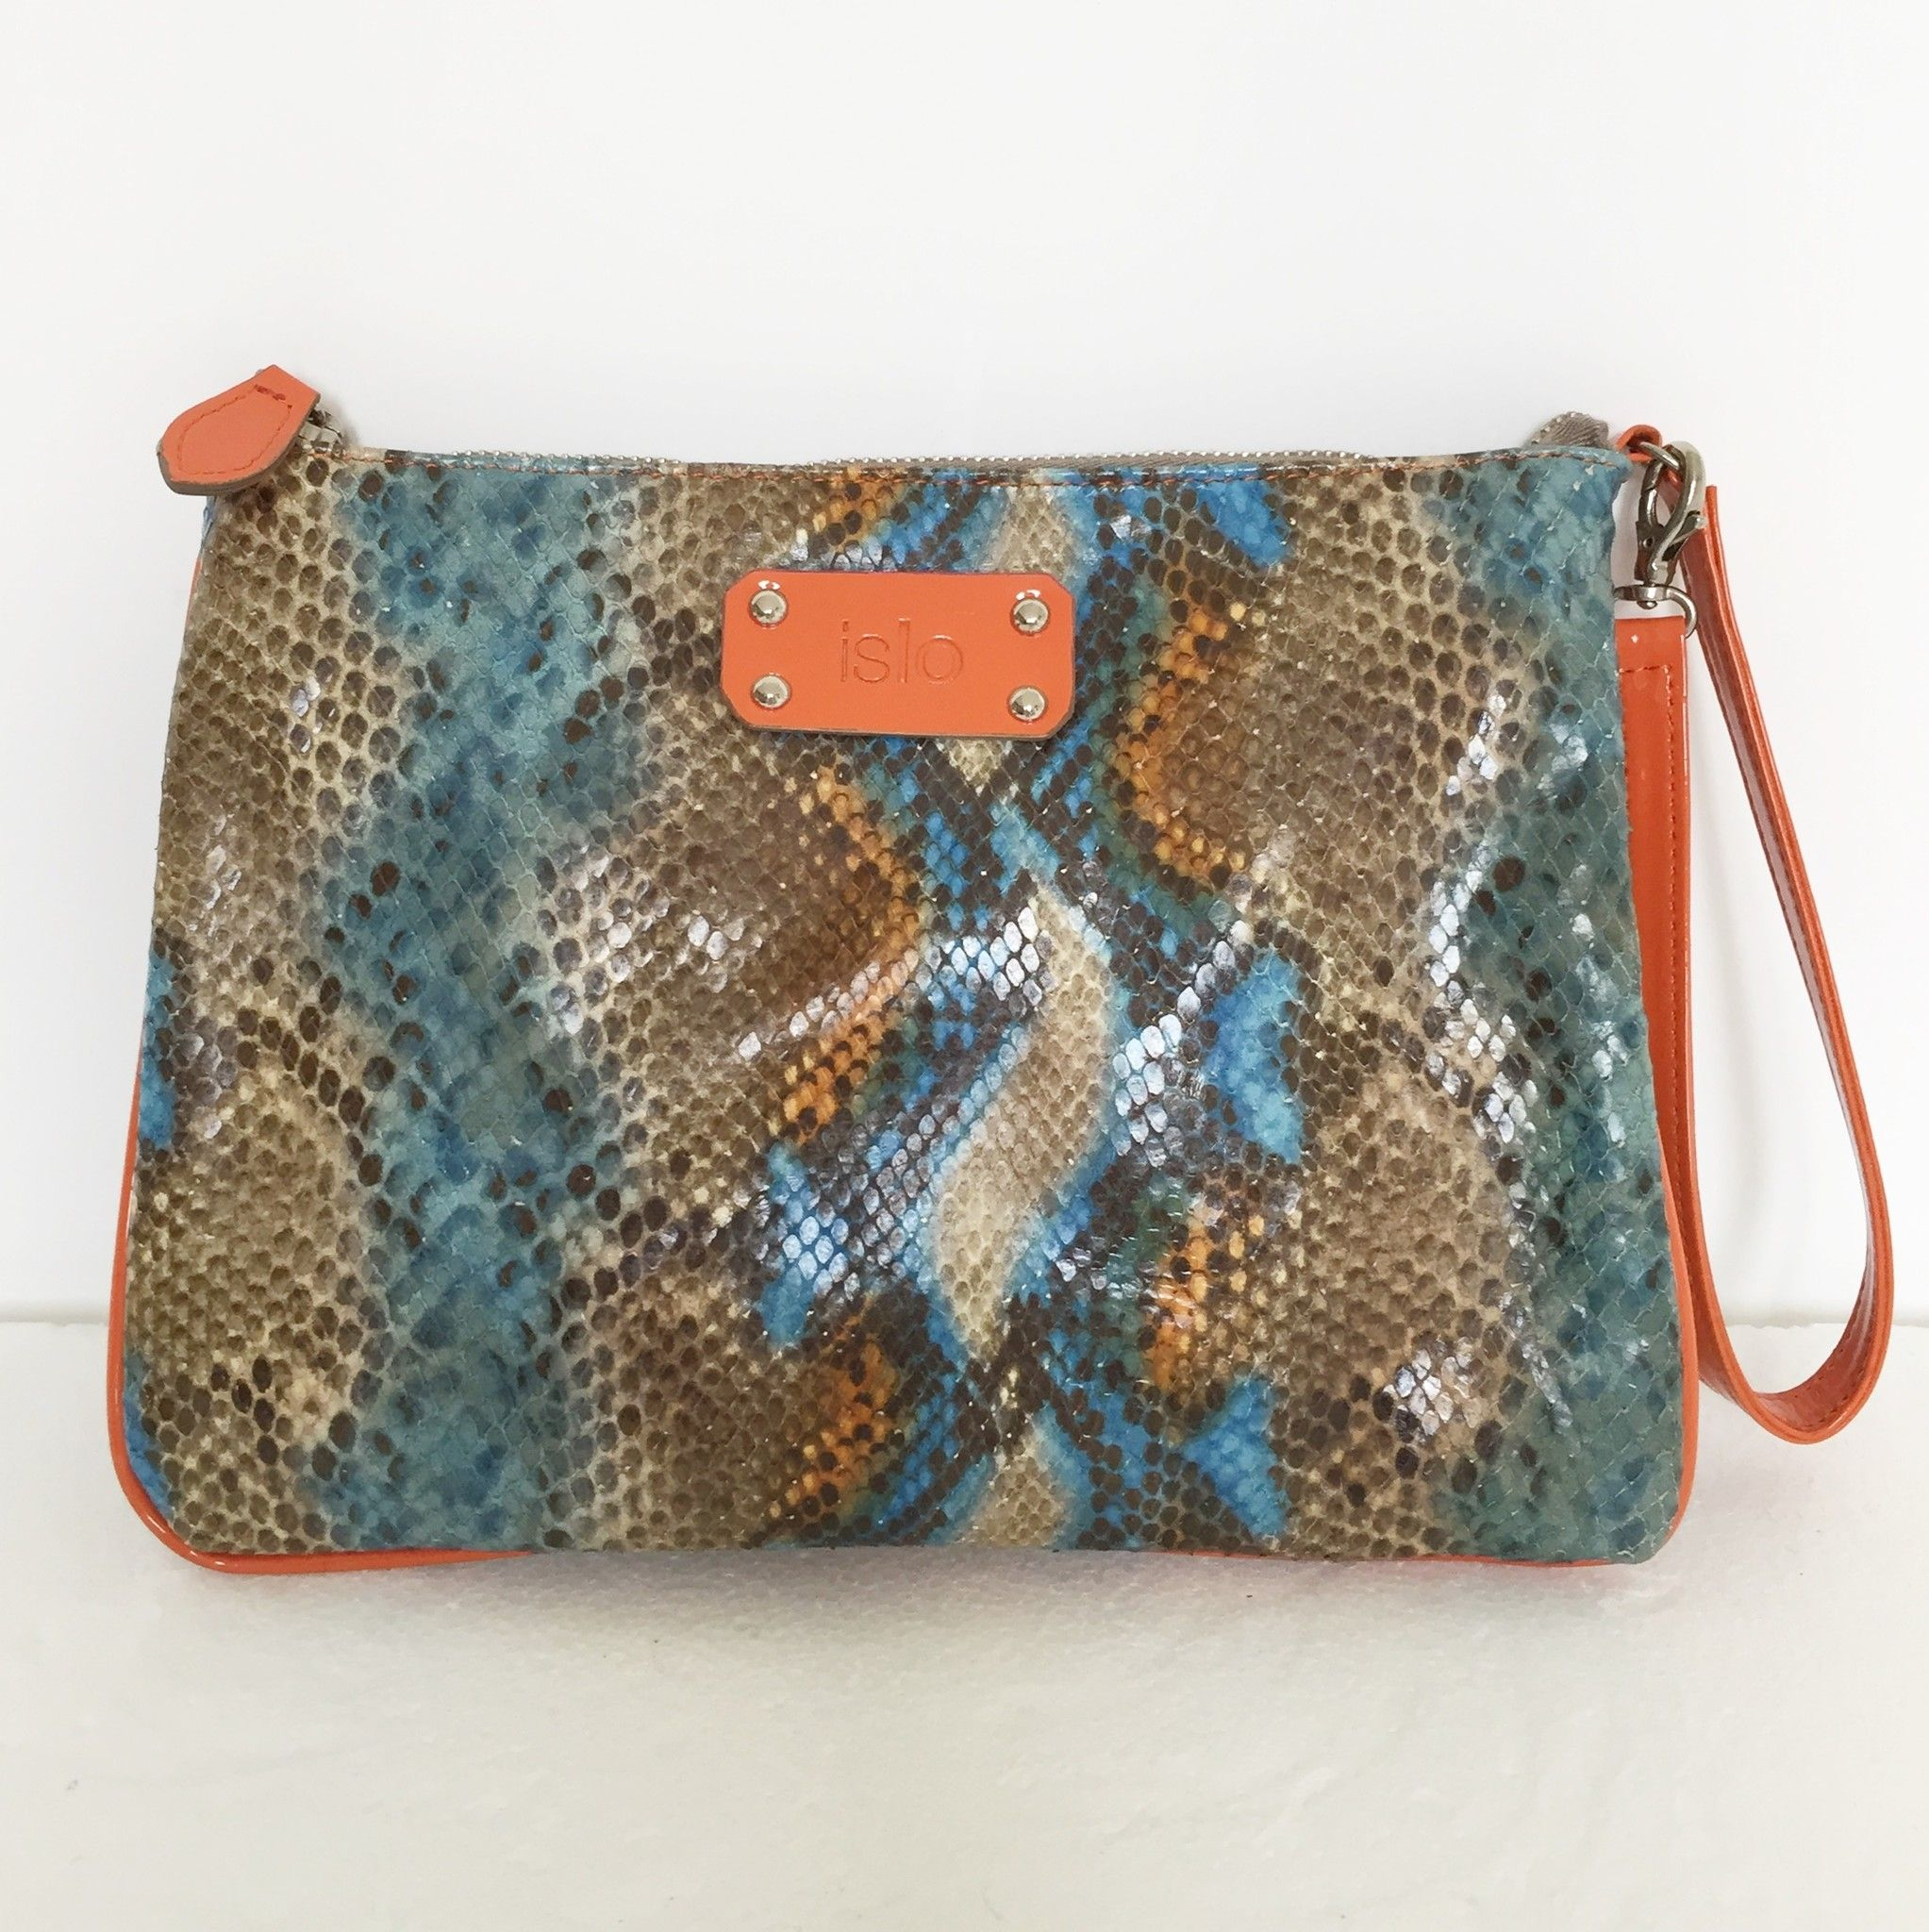 ISLO Python print leather clutch bag Cod.5963